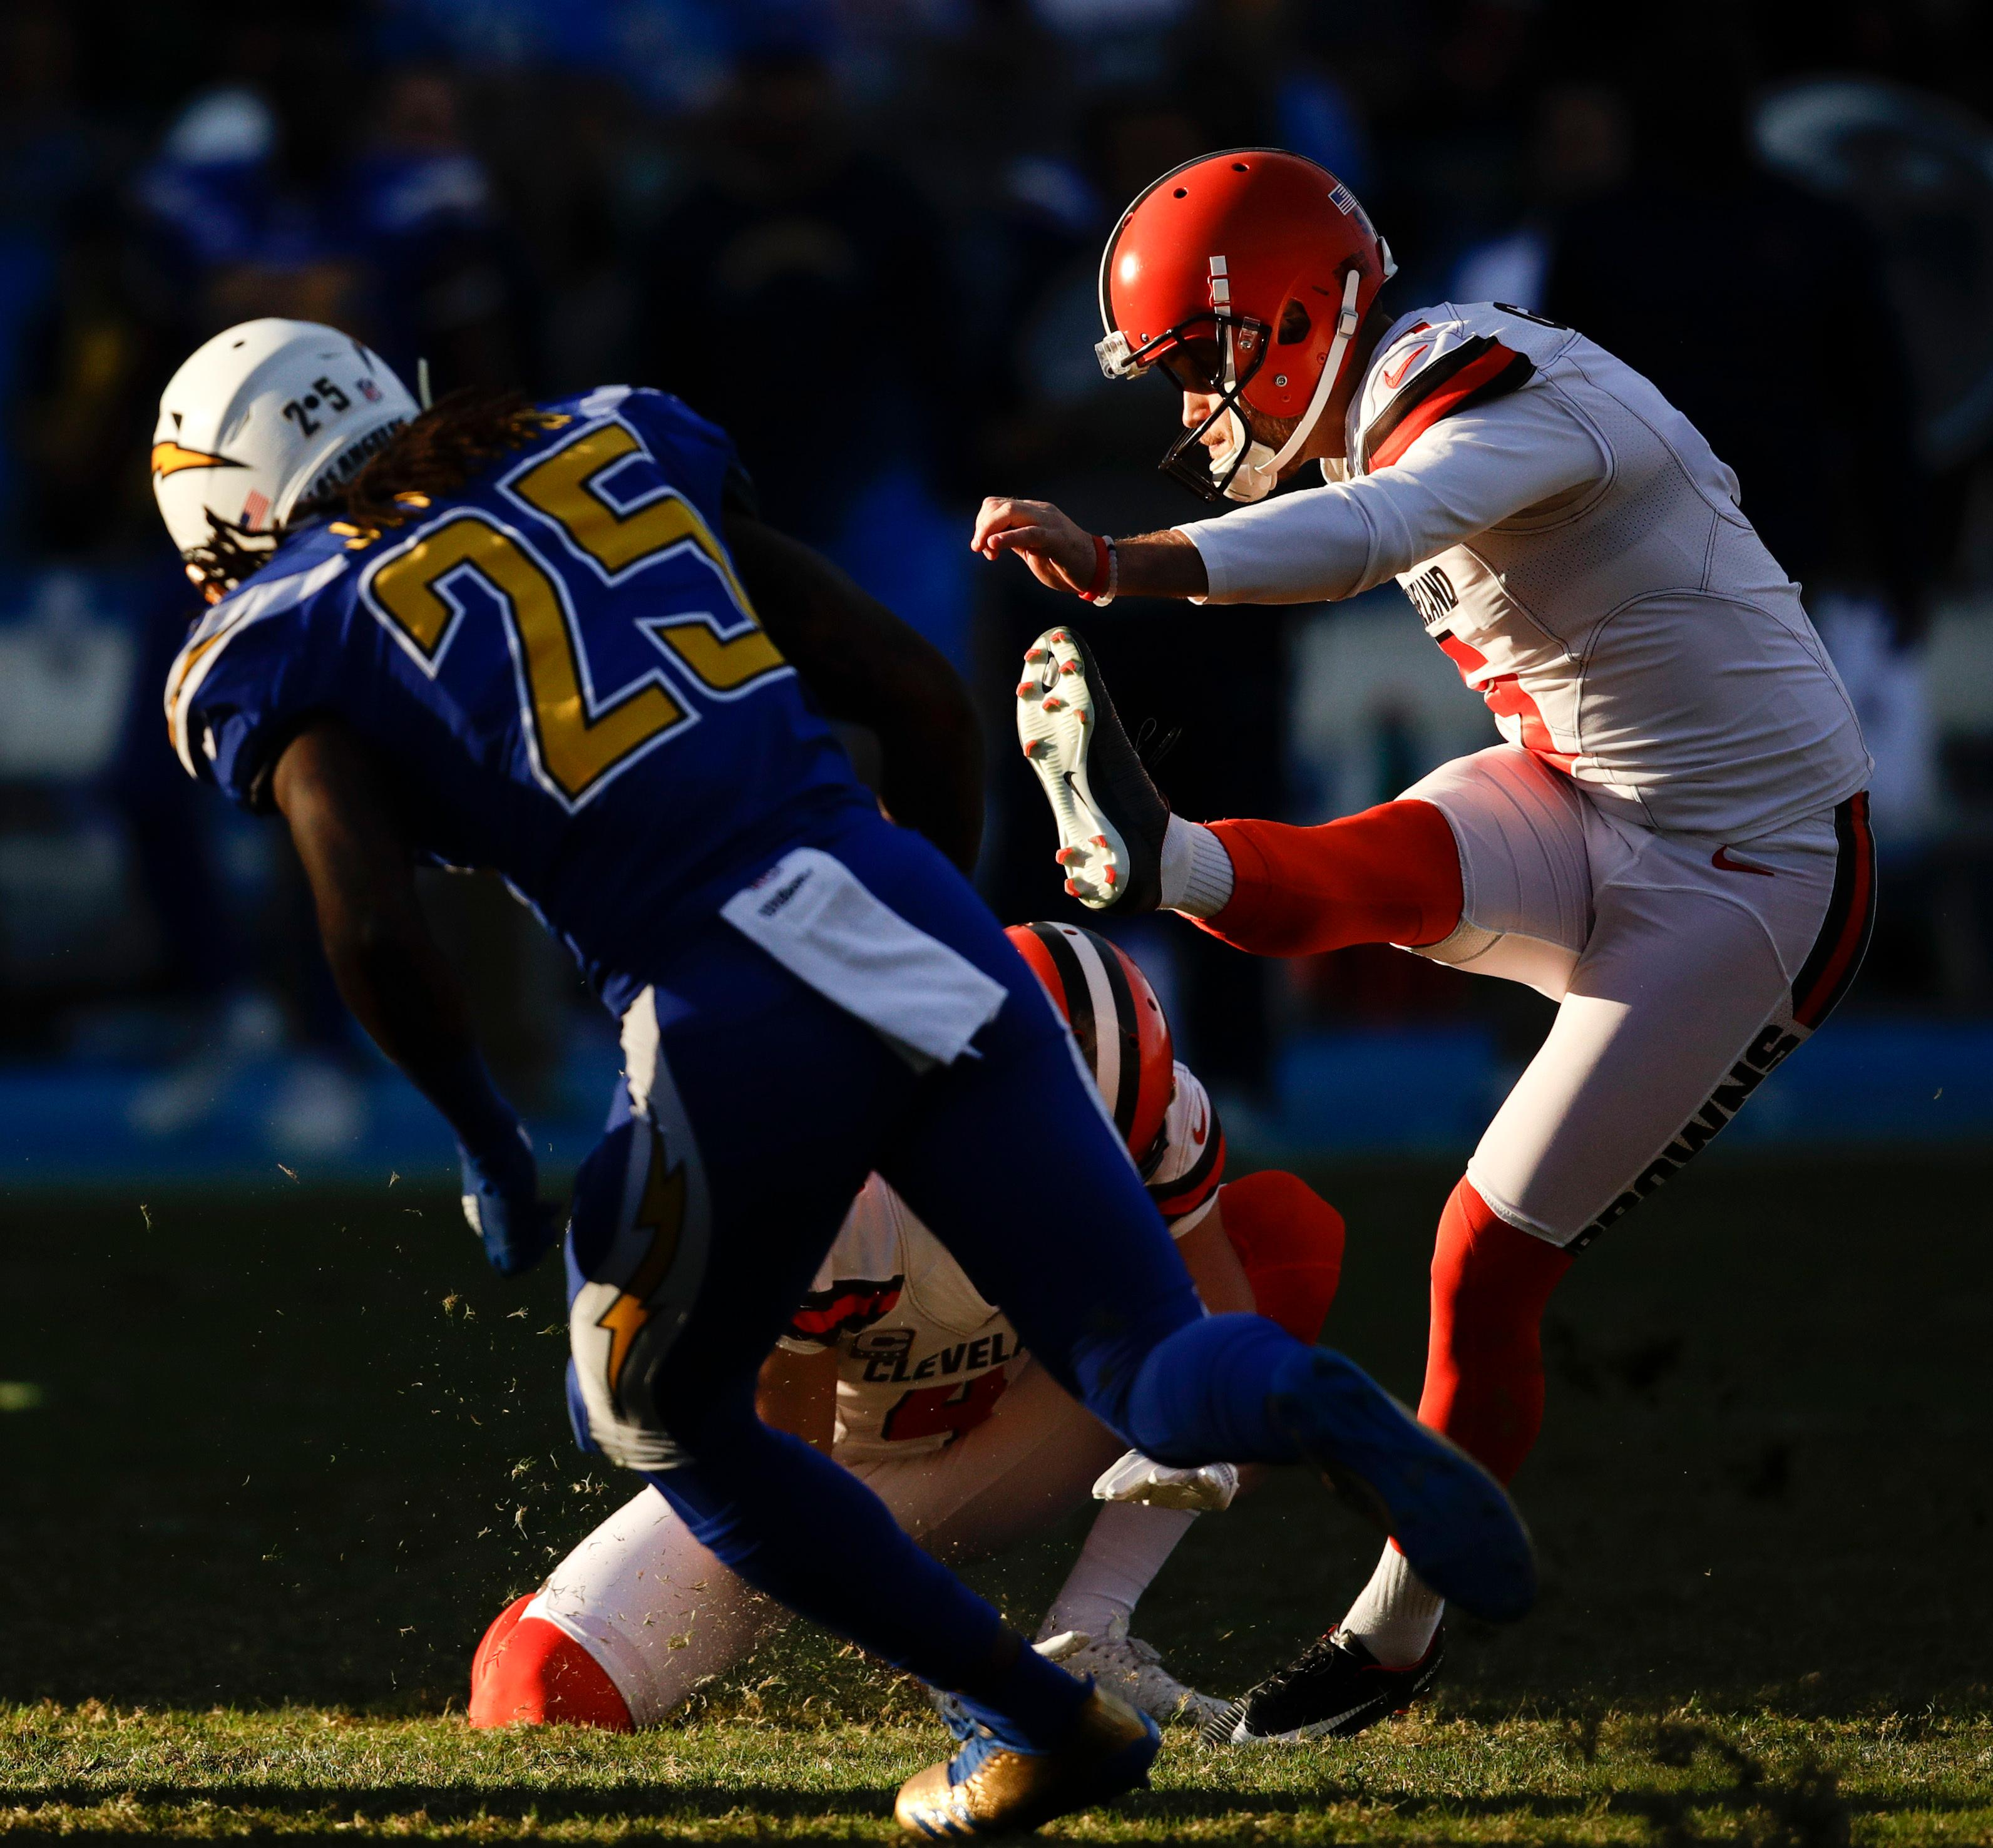 Cleveland Browns kicker Zane Gonzalez kicks a field goal against the Los Angeles Chargers during the second half of an NFL football game Sunday, Dec. 3, 2017, in Carson, Calif. (AP Photo/Jae C. Hong)